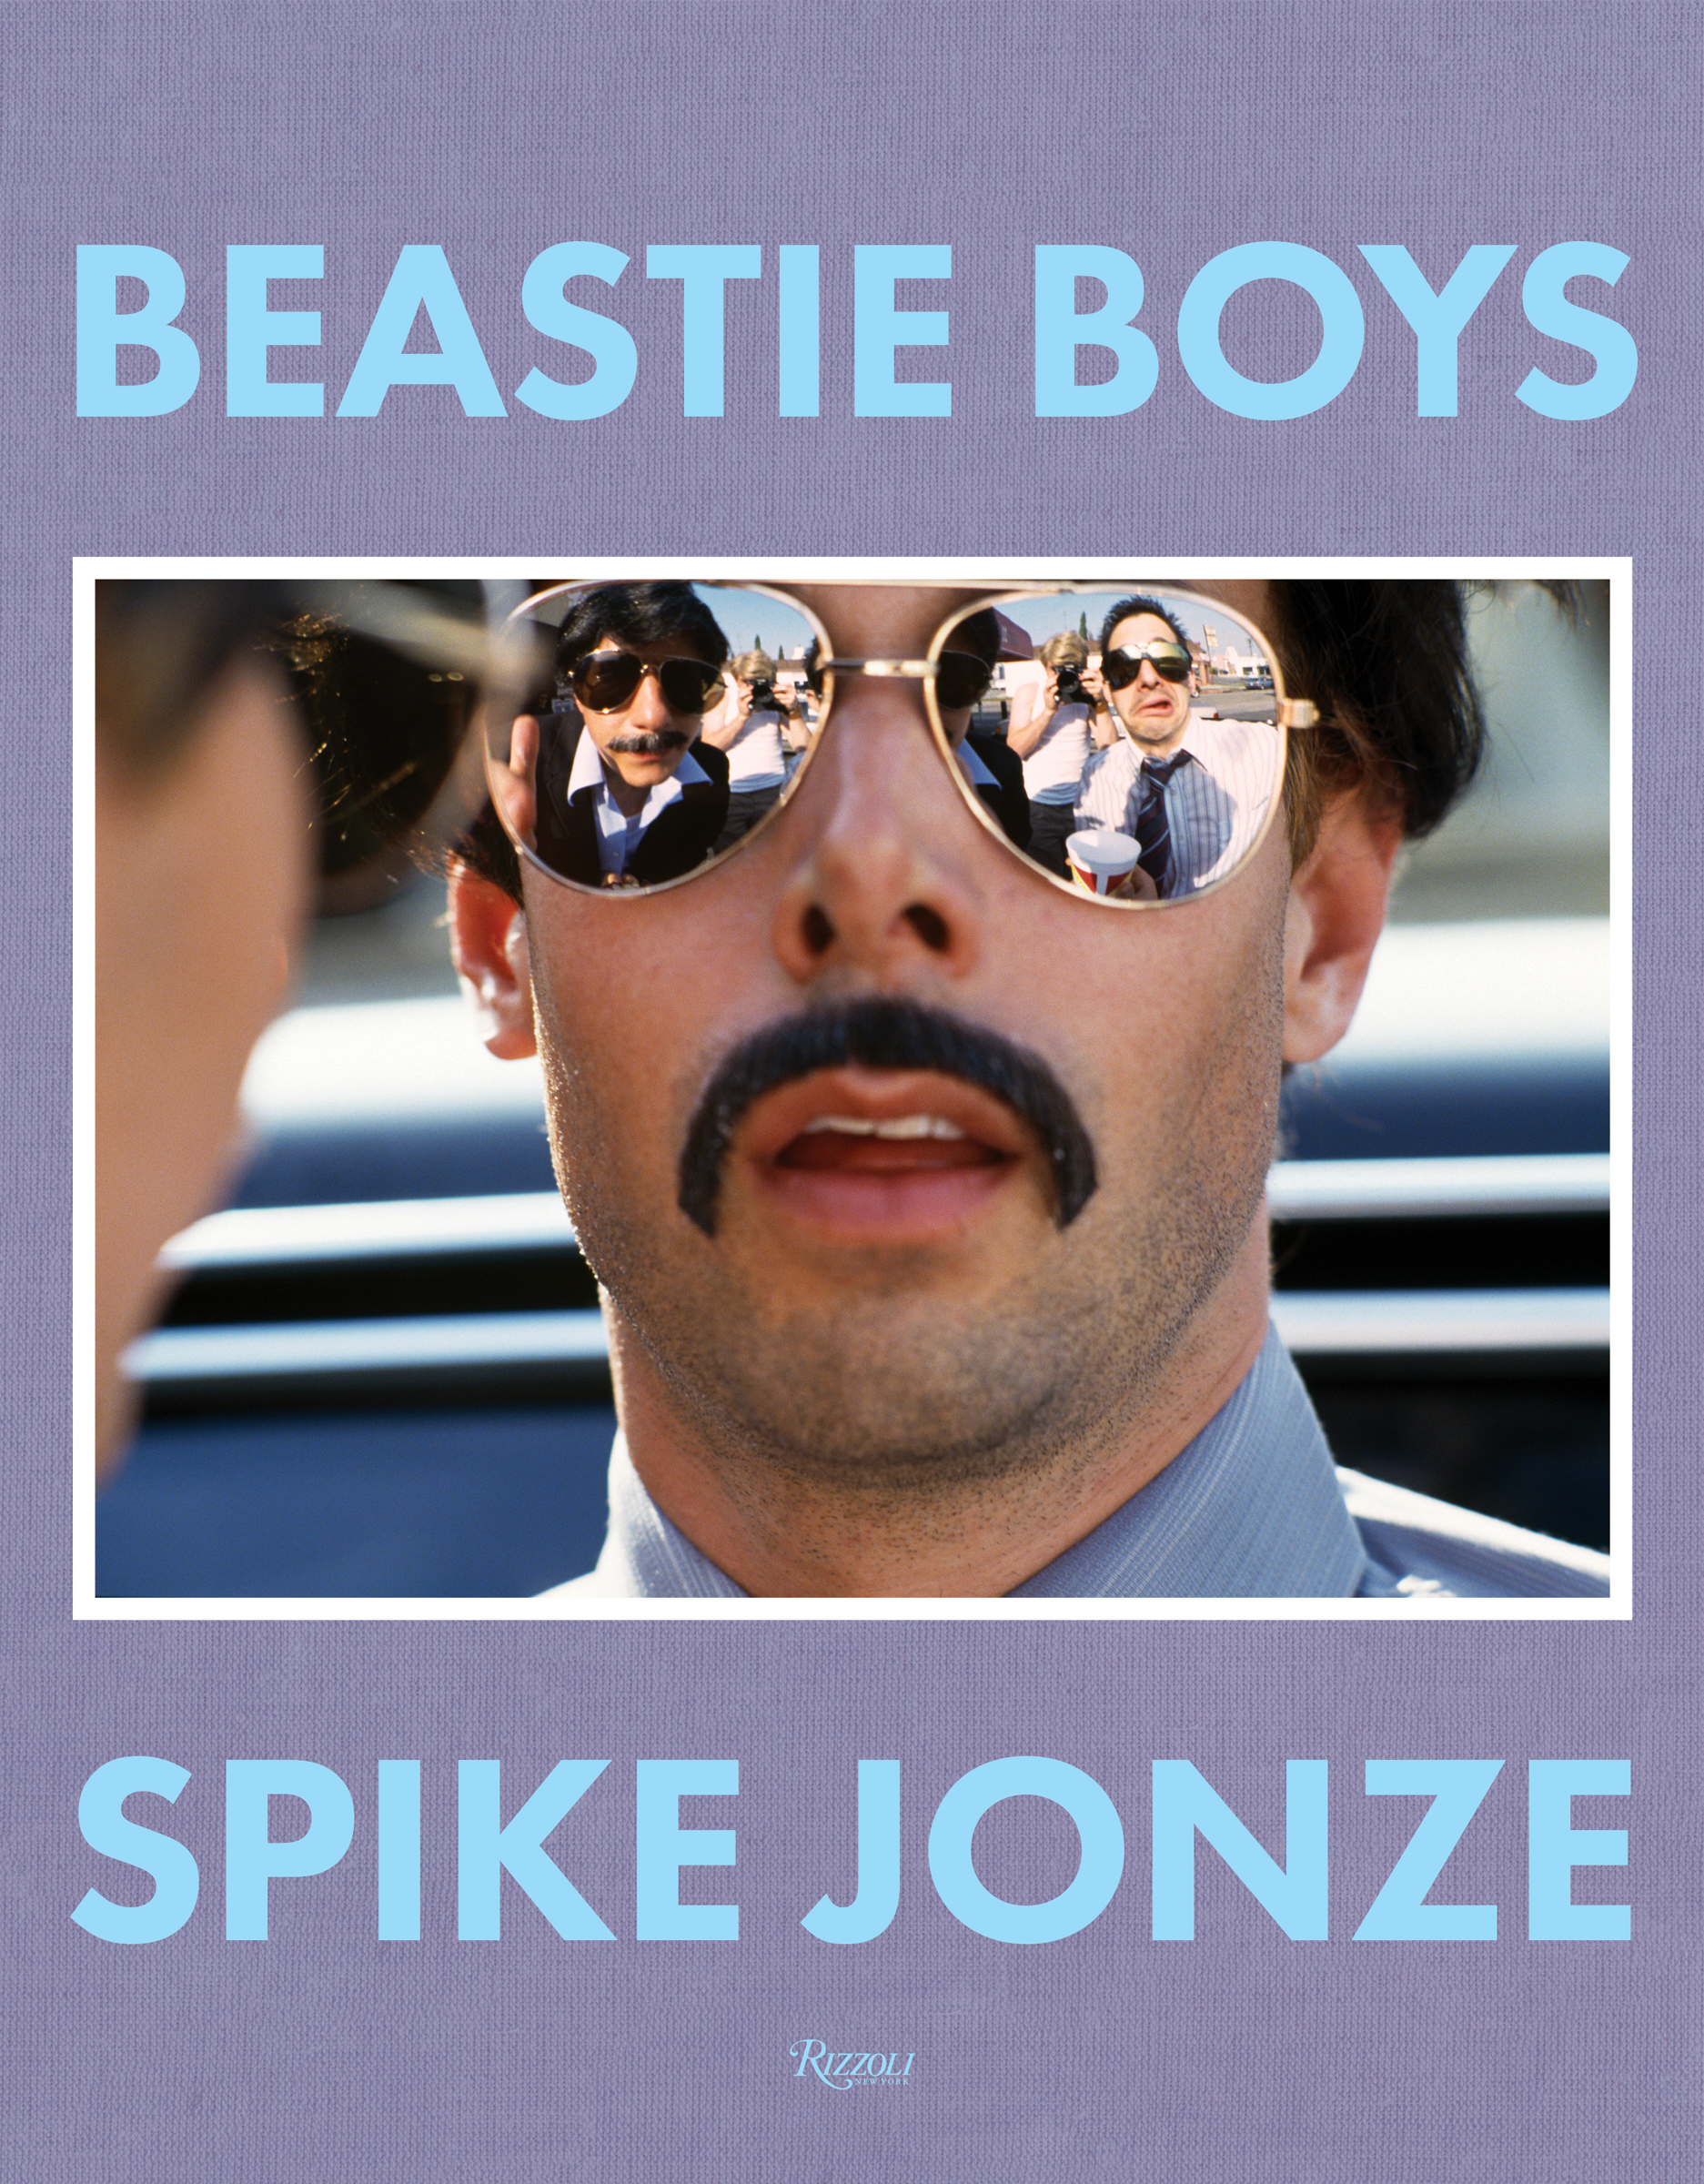 Inside Spike Jonze's 'Beastie Boys' Book